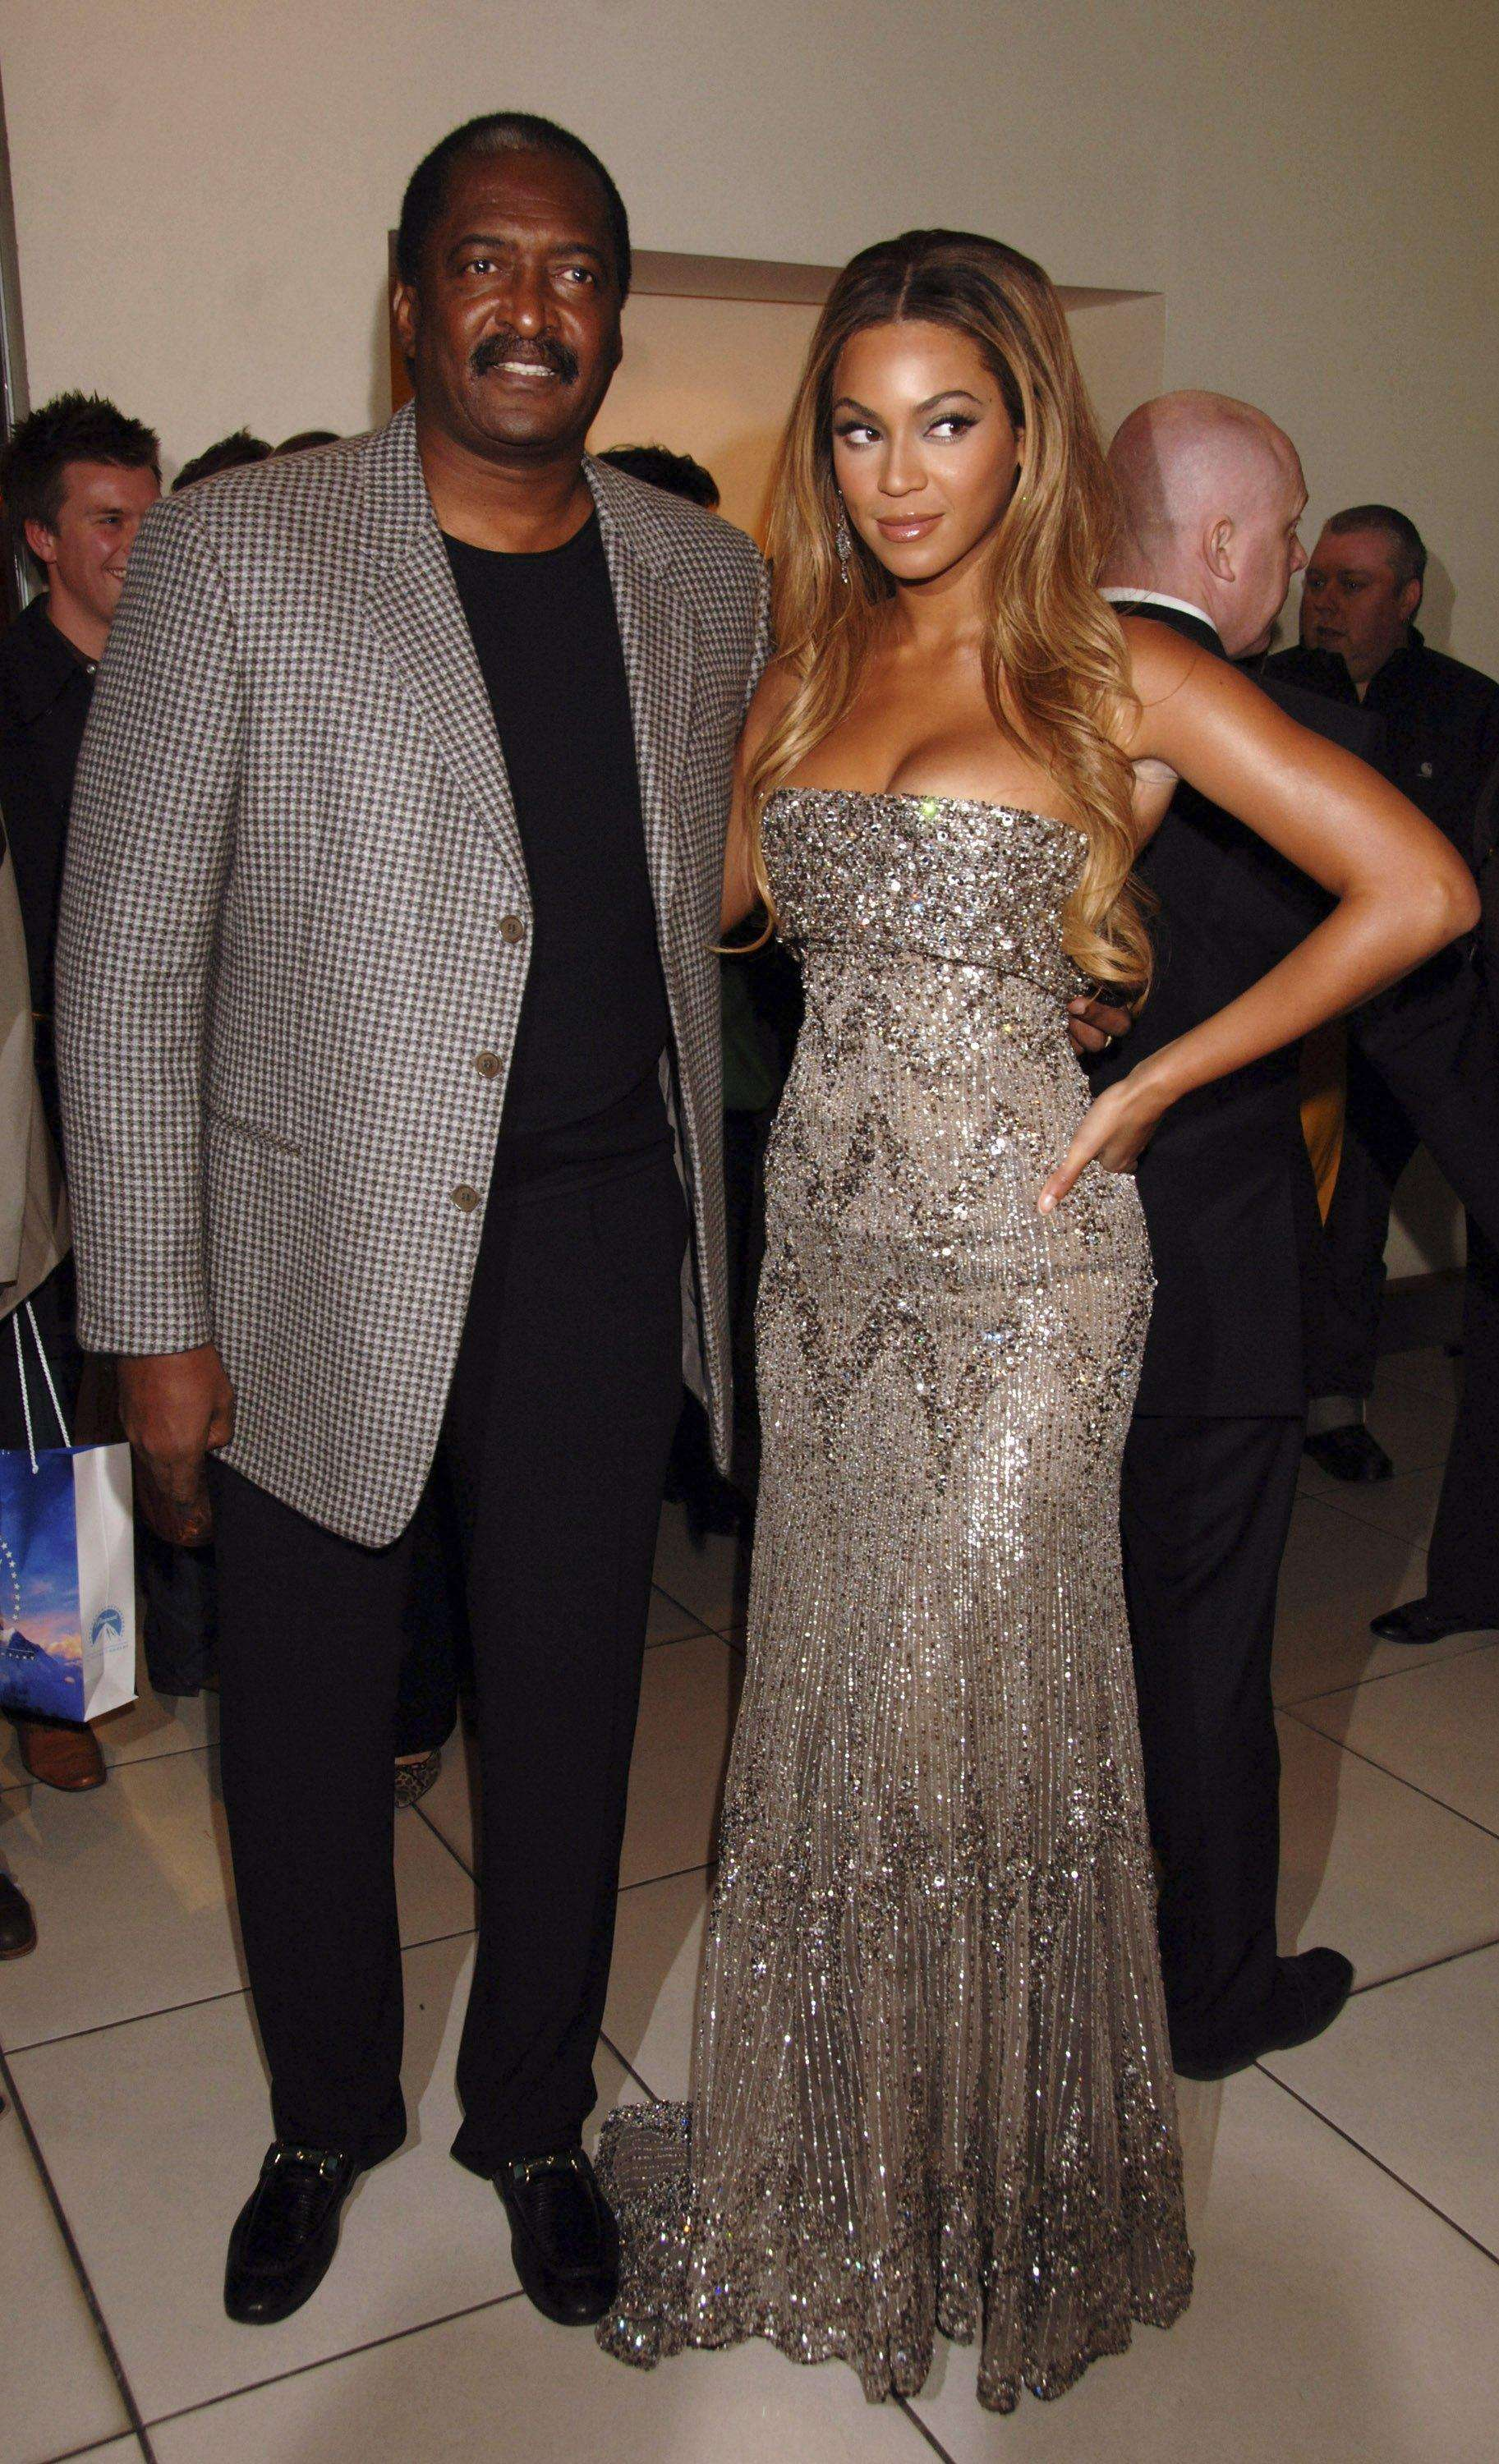 LONDON - JANUARY 21: (EMBARGOED FOR PUBLICATION IN UK TABLOID NEWSPAPERS UNTIL 48 HOURS AFTER CREATE DATE AND TIME) Beyonce Knowles and her father Matthew Knowles arrive at the UK film premiere of 'Dreamgirls,' held at Odeon Leicester Square on January 21, 2007 in London, England. (Photo by Dave M. Benett/Getty Images) Foto: Getty Images